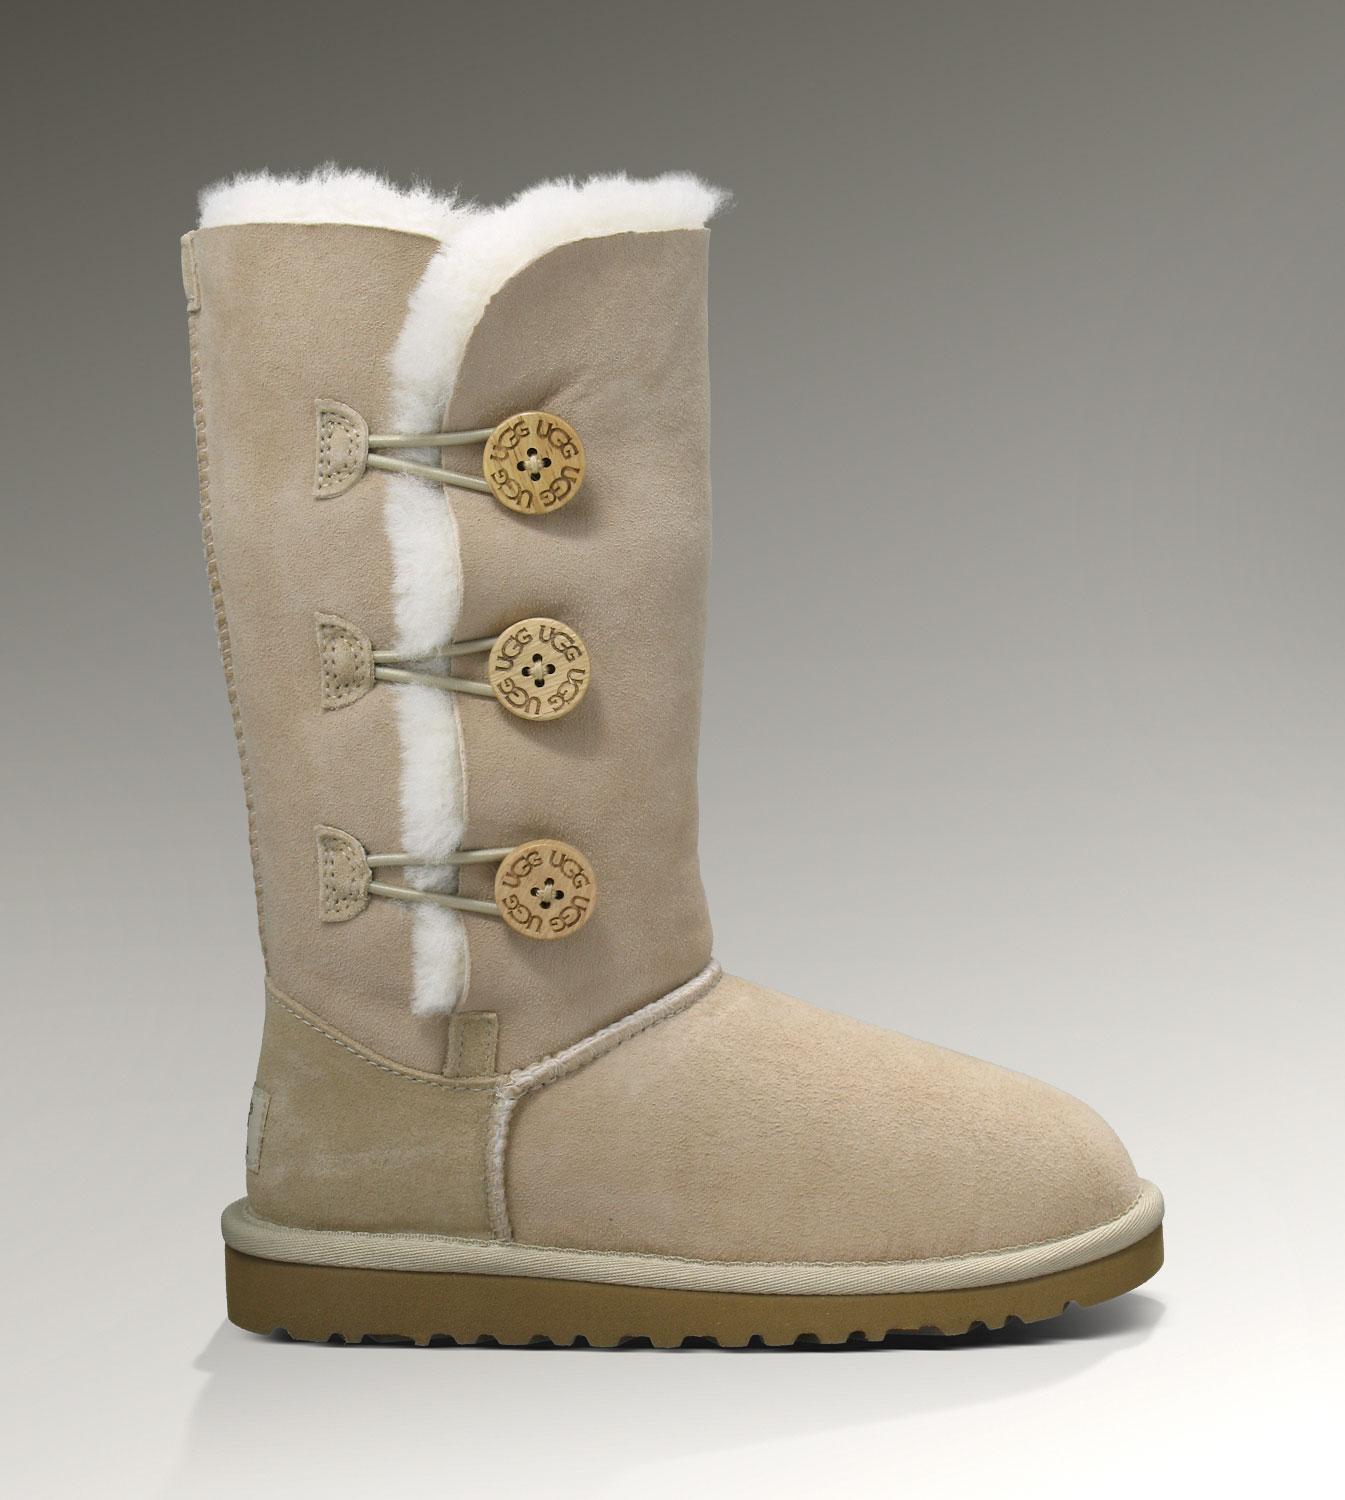 UGG Bailey Button Triplet 1962 Sand Boots